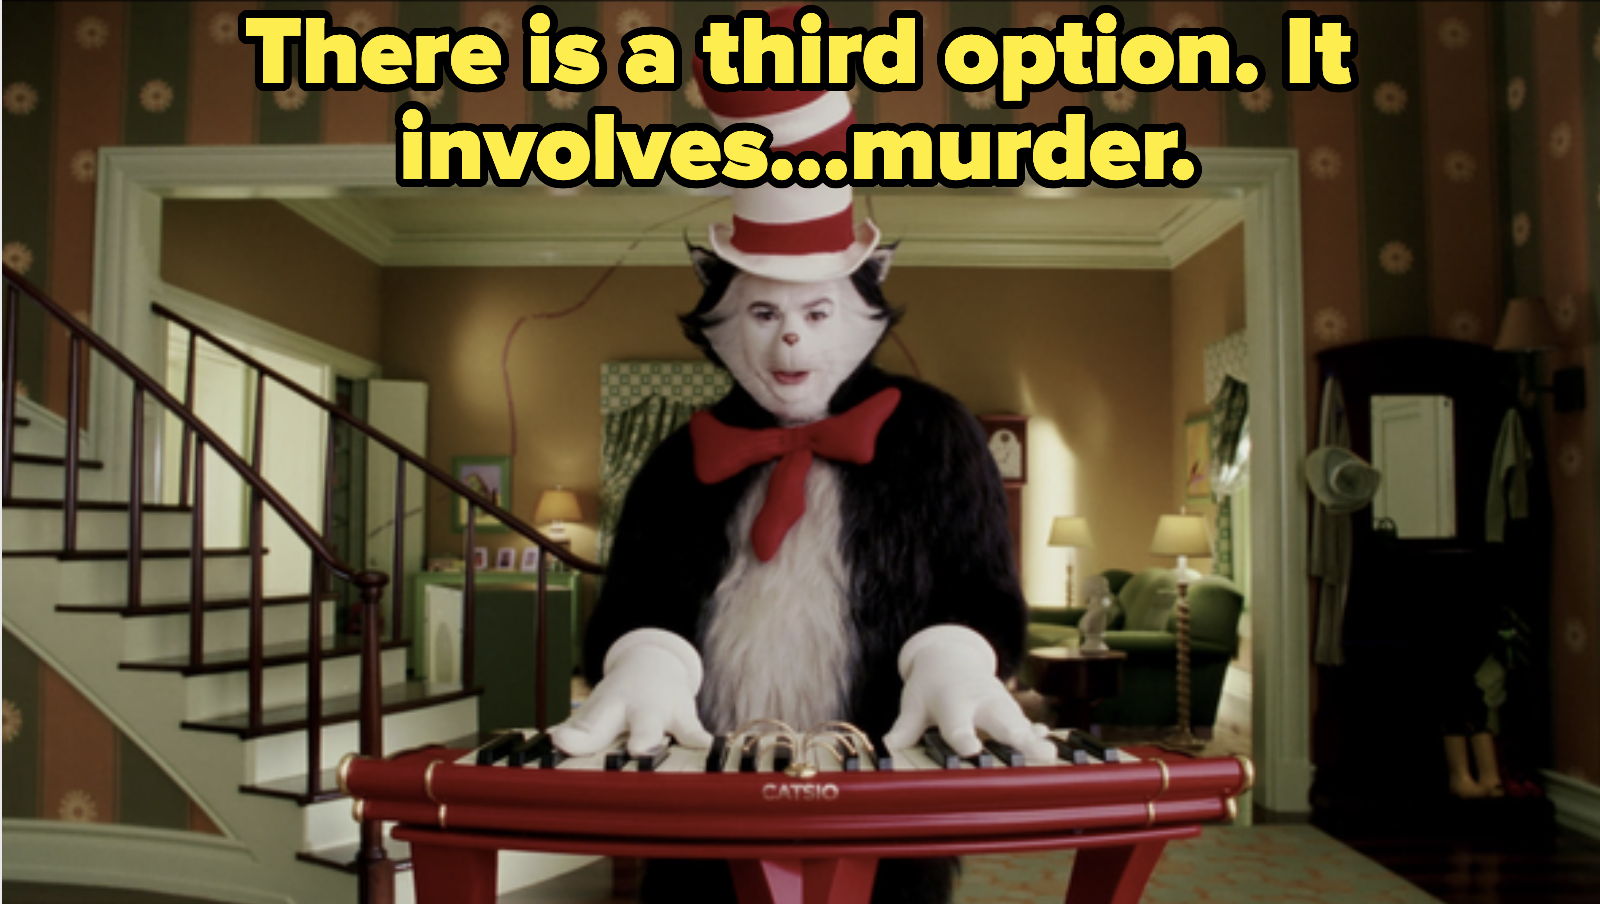 The cat, playing piano and suggesting murder